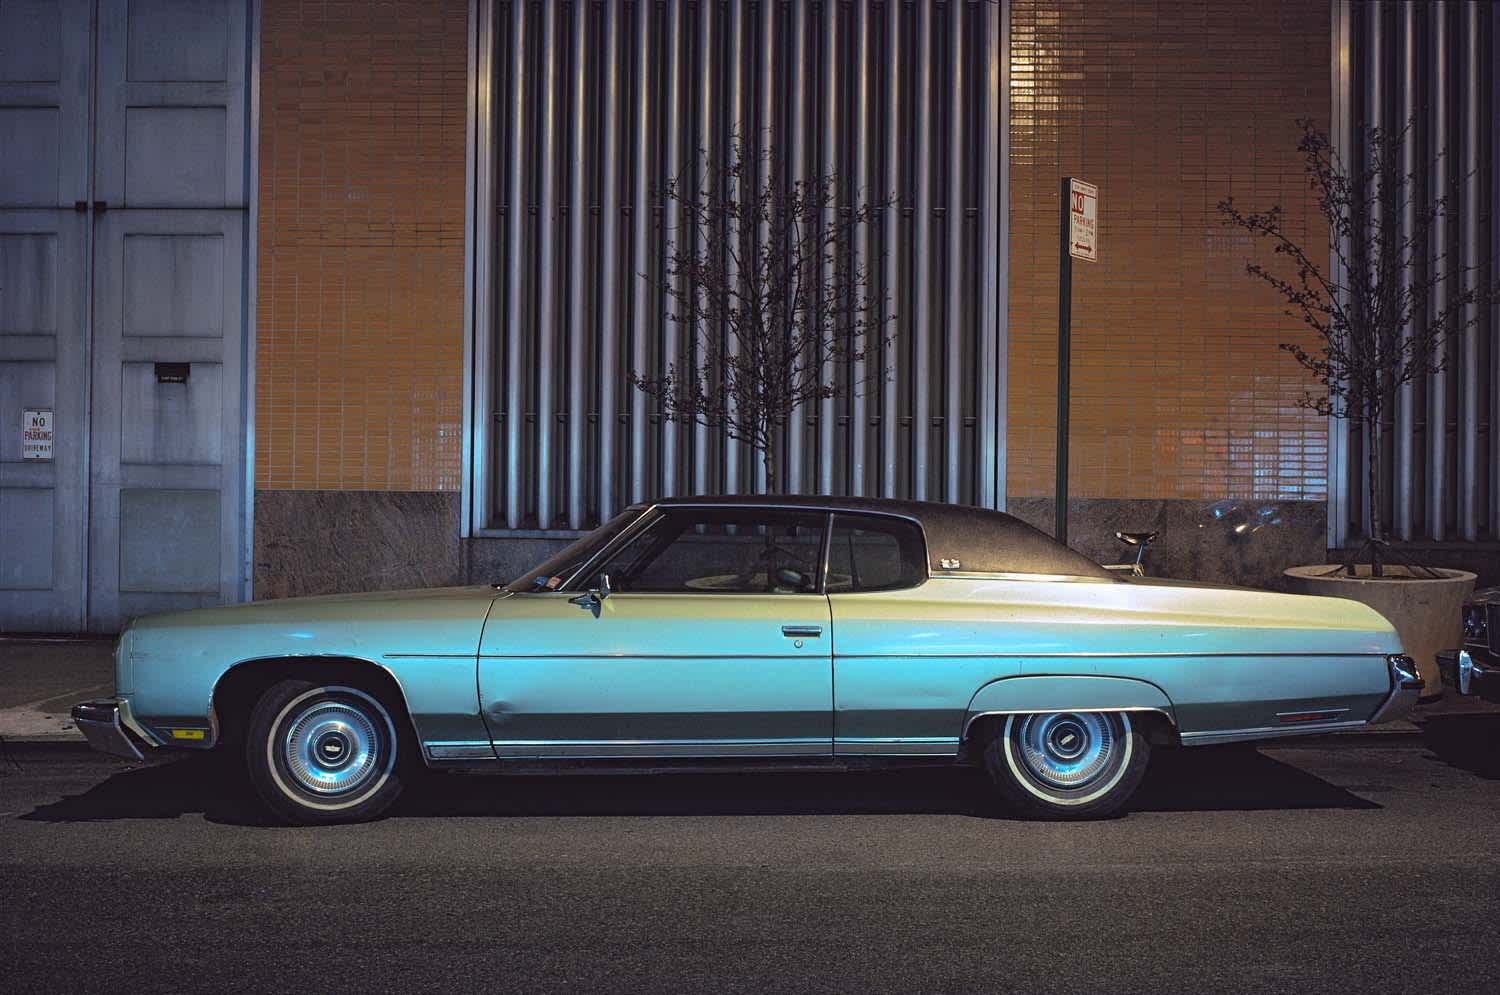 Langdon Clay, Silver Fish, Chevrolet Impala Custom Coupe in front of Con Edison Substation